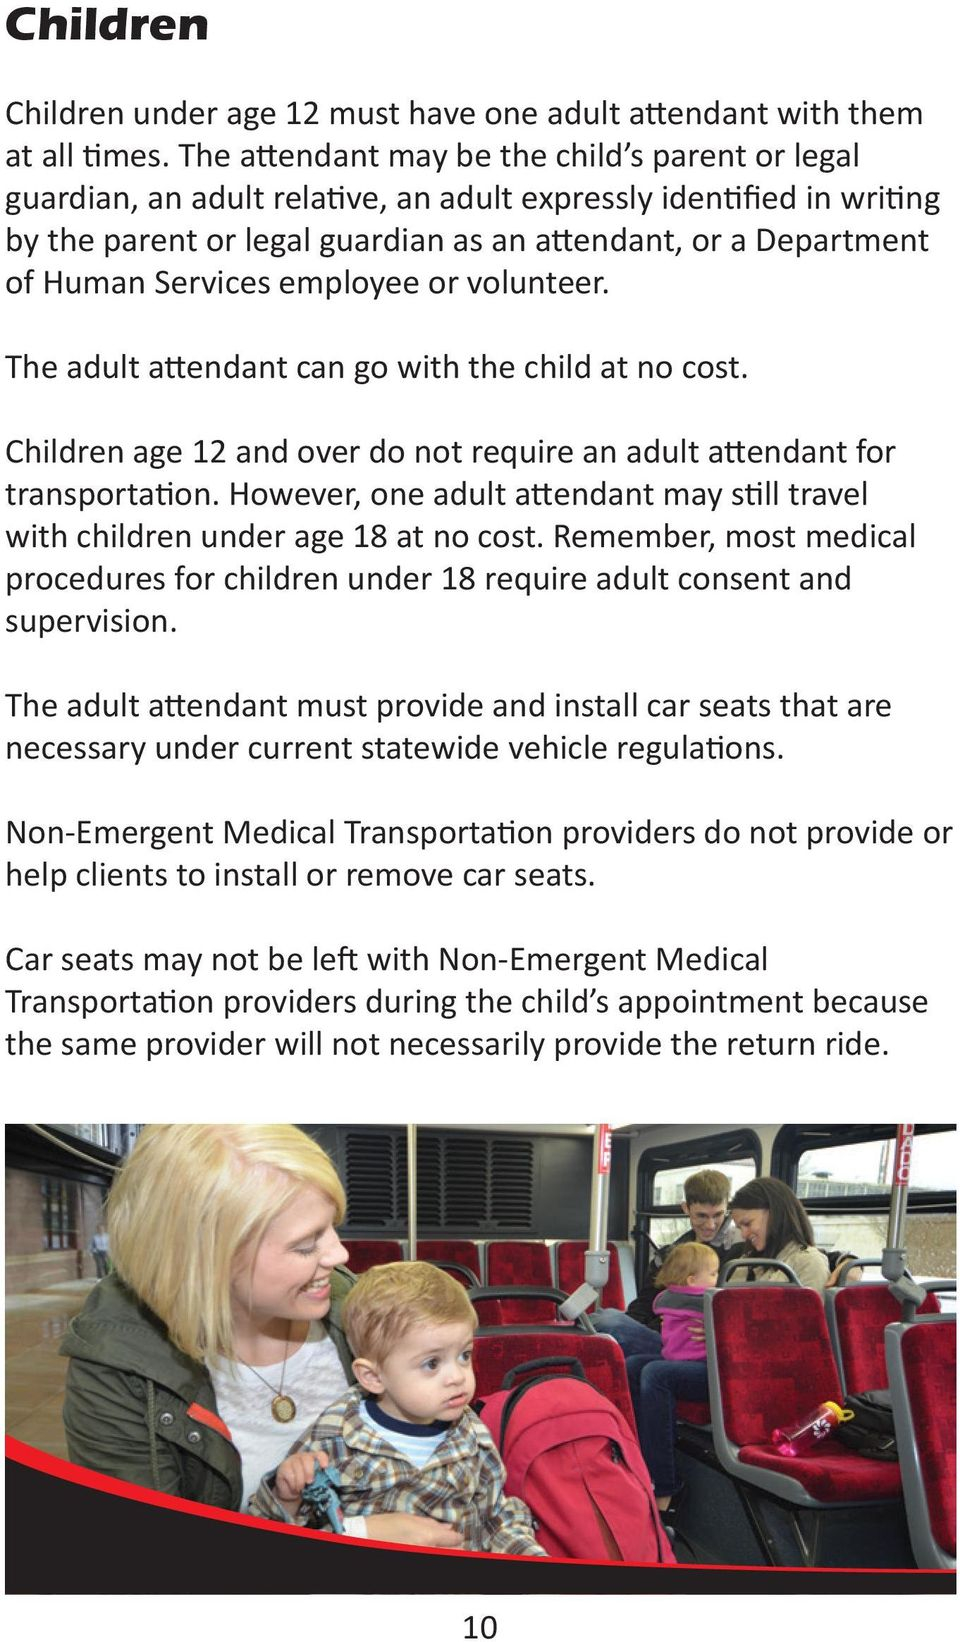 Services employee or volunteer. The adult attendant can go with the child at no cost. Children age 12 and over do not require an adult attendant for transportation.